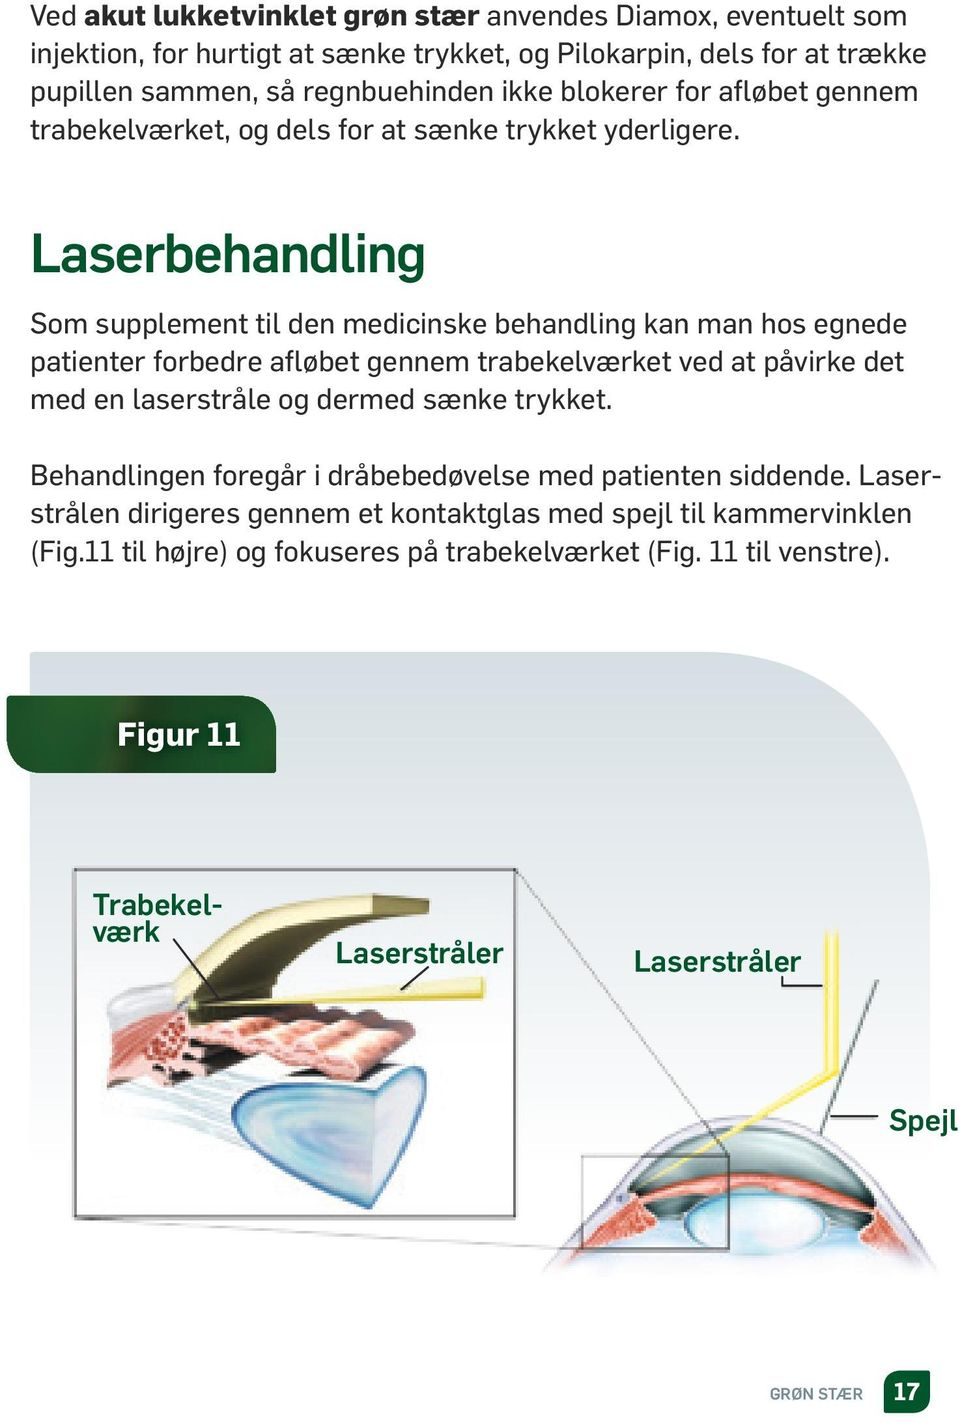 Laserbehandling Som supplement til den medicinske behandling kan man hos egnede patienter forbedre afløbet gennem trabekelværket ved at påvirke det med en laserstråle og dermed